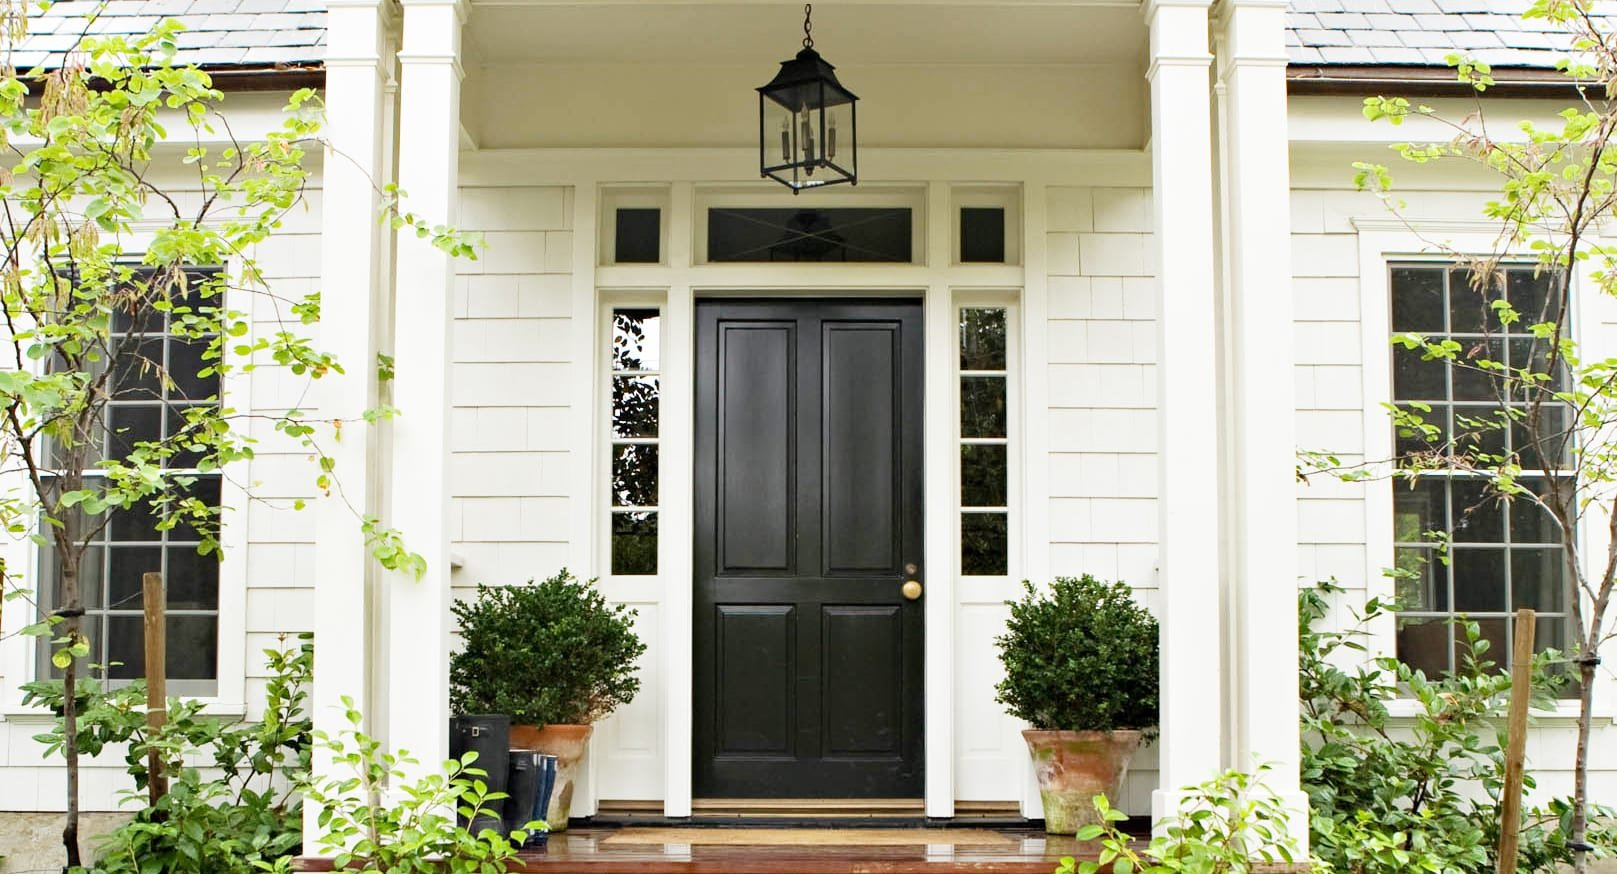 Design By The Stars: The Ideal Front Door Color Based On Your Zodiac Sign - Bobby Berk